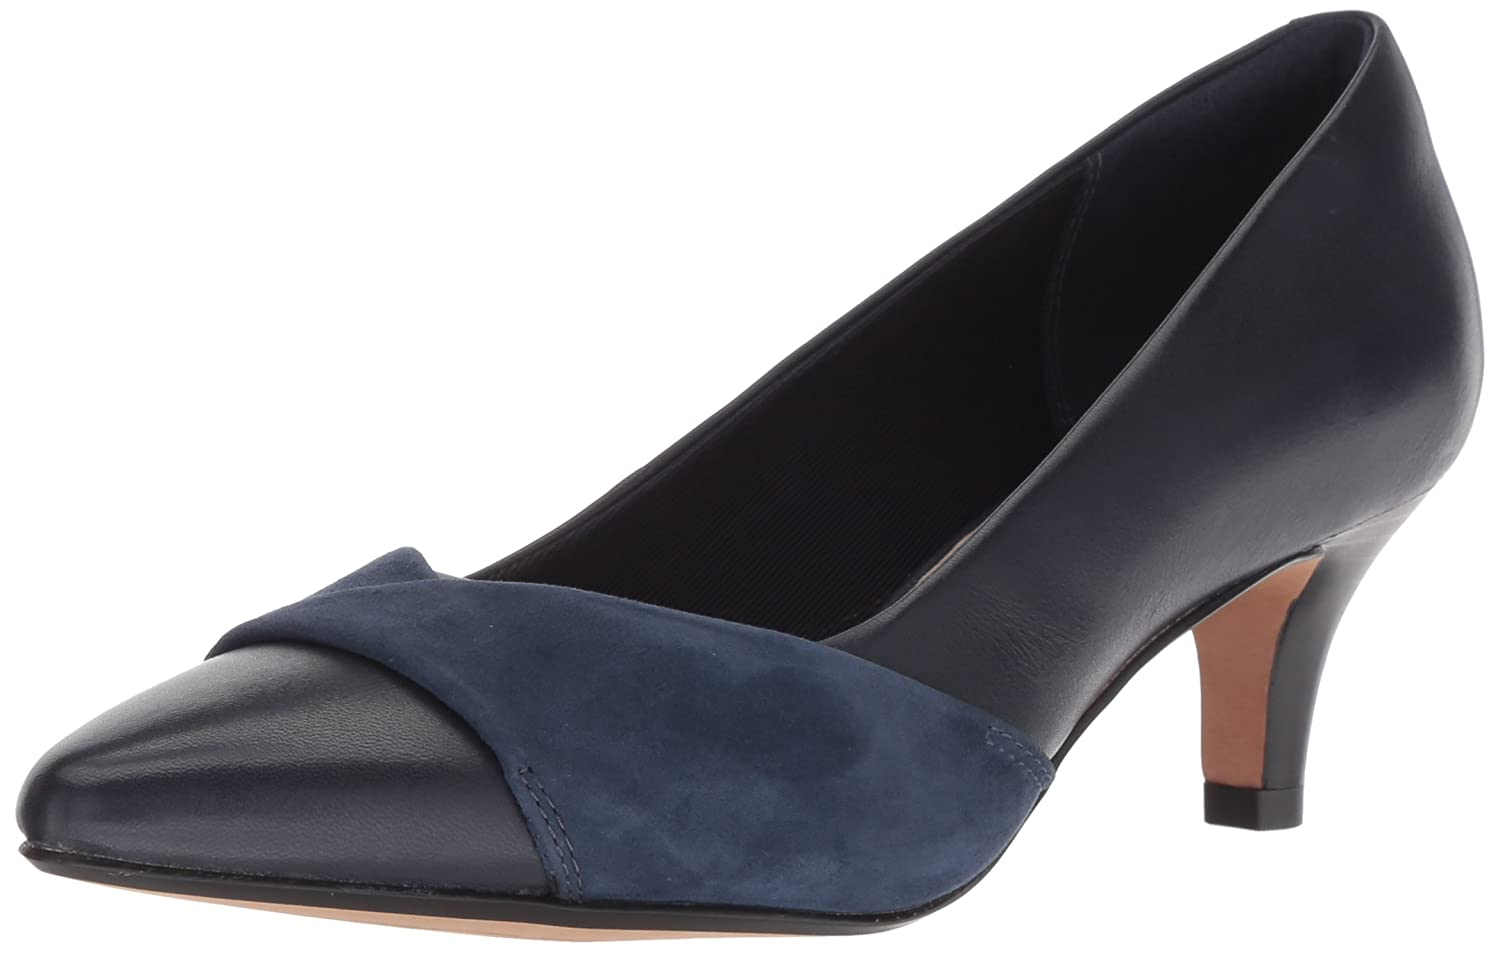 Clarks Donna  Linvale Vena Pump, Navy Leather Nubuck Combi, 060 M US